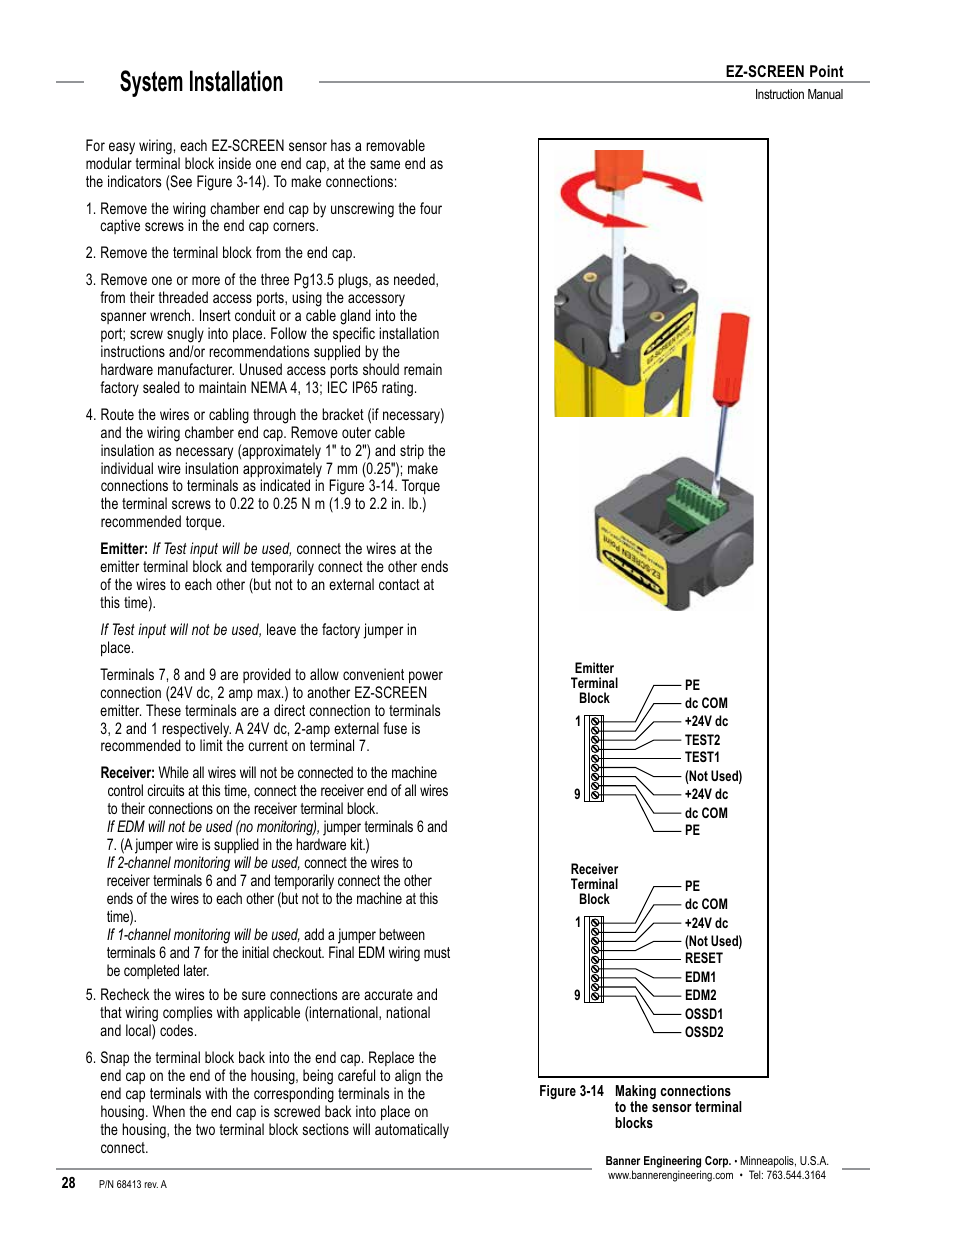 System installation | Banner EZ-SCREEN Safety Light Curtain Systems User  Manual | Page 30 / 60